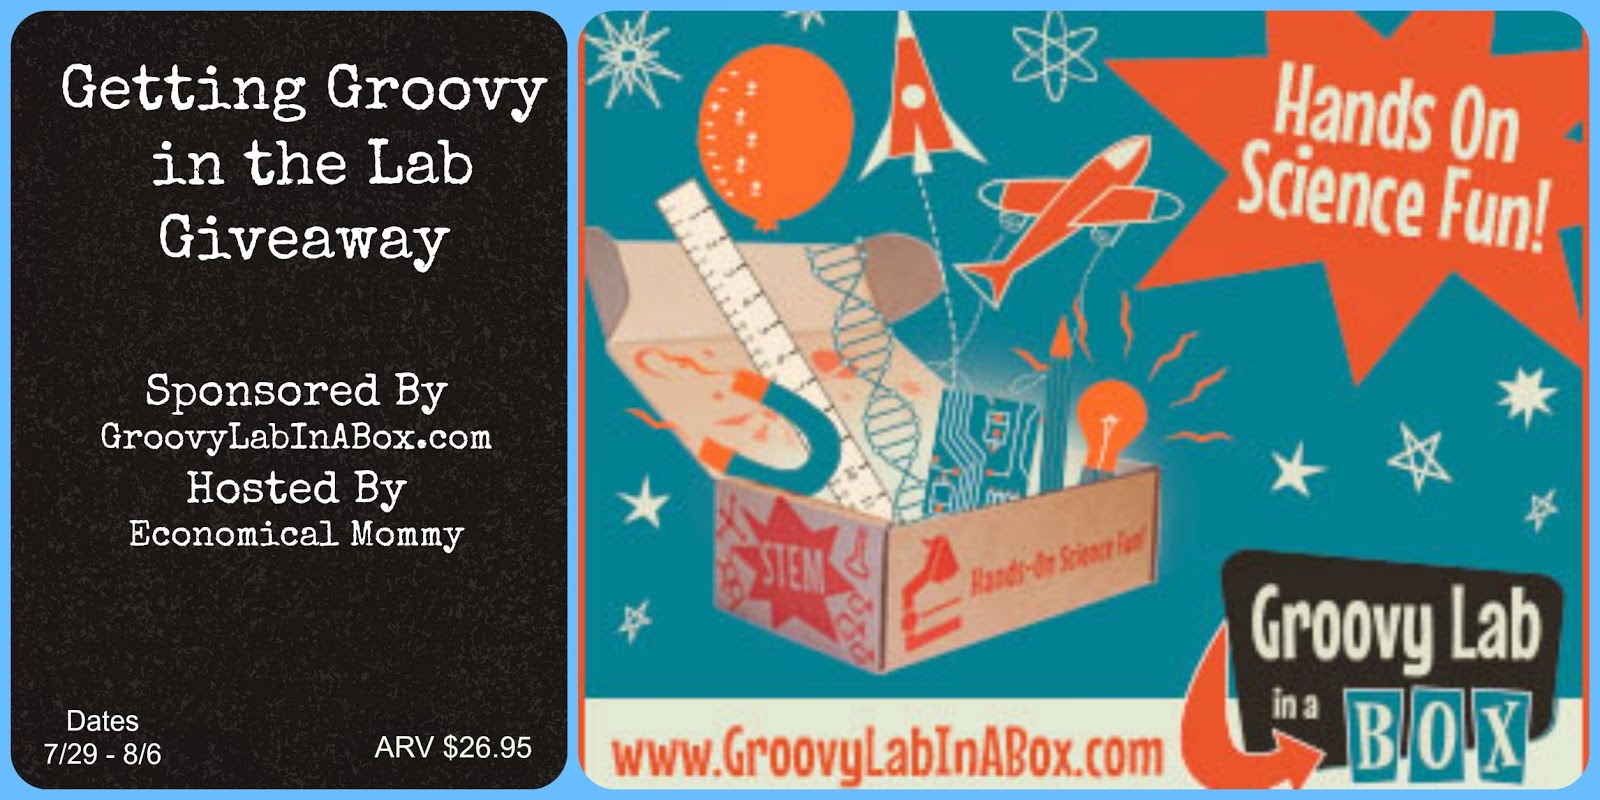 Groovy Lab Subscription Giveaway